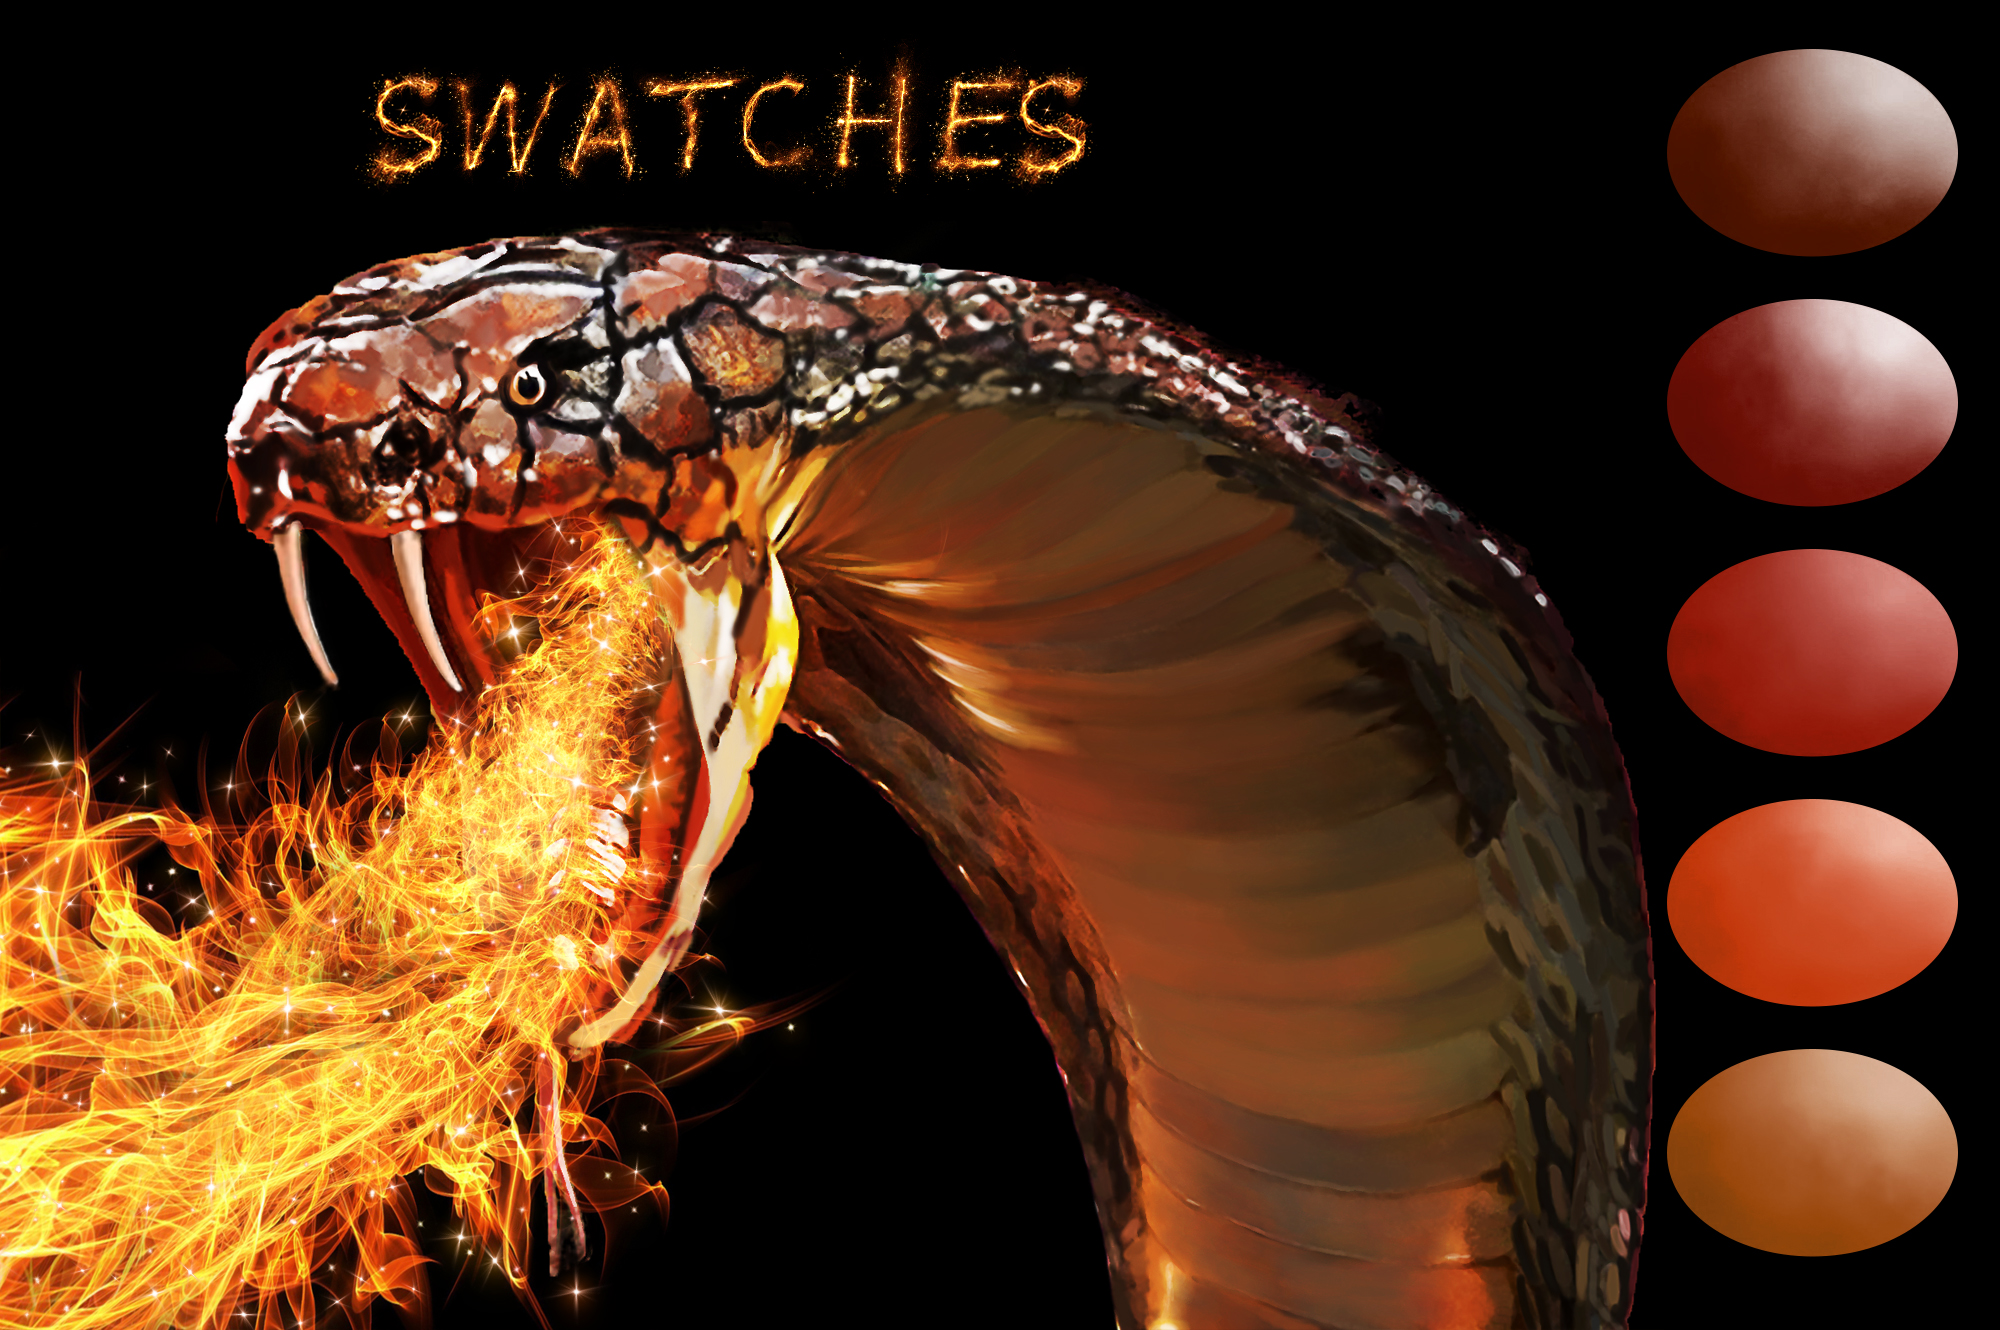 Snake Swatches example image 2